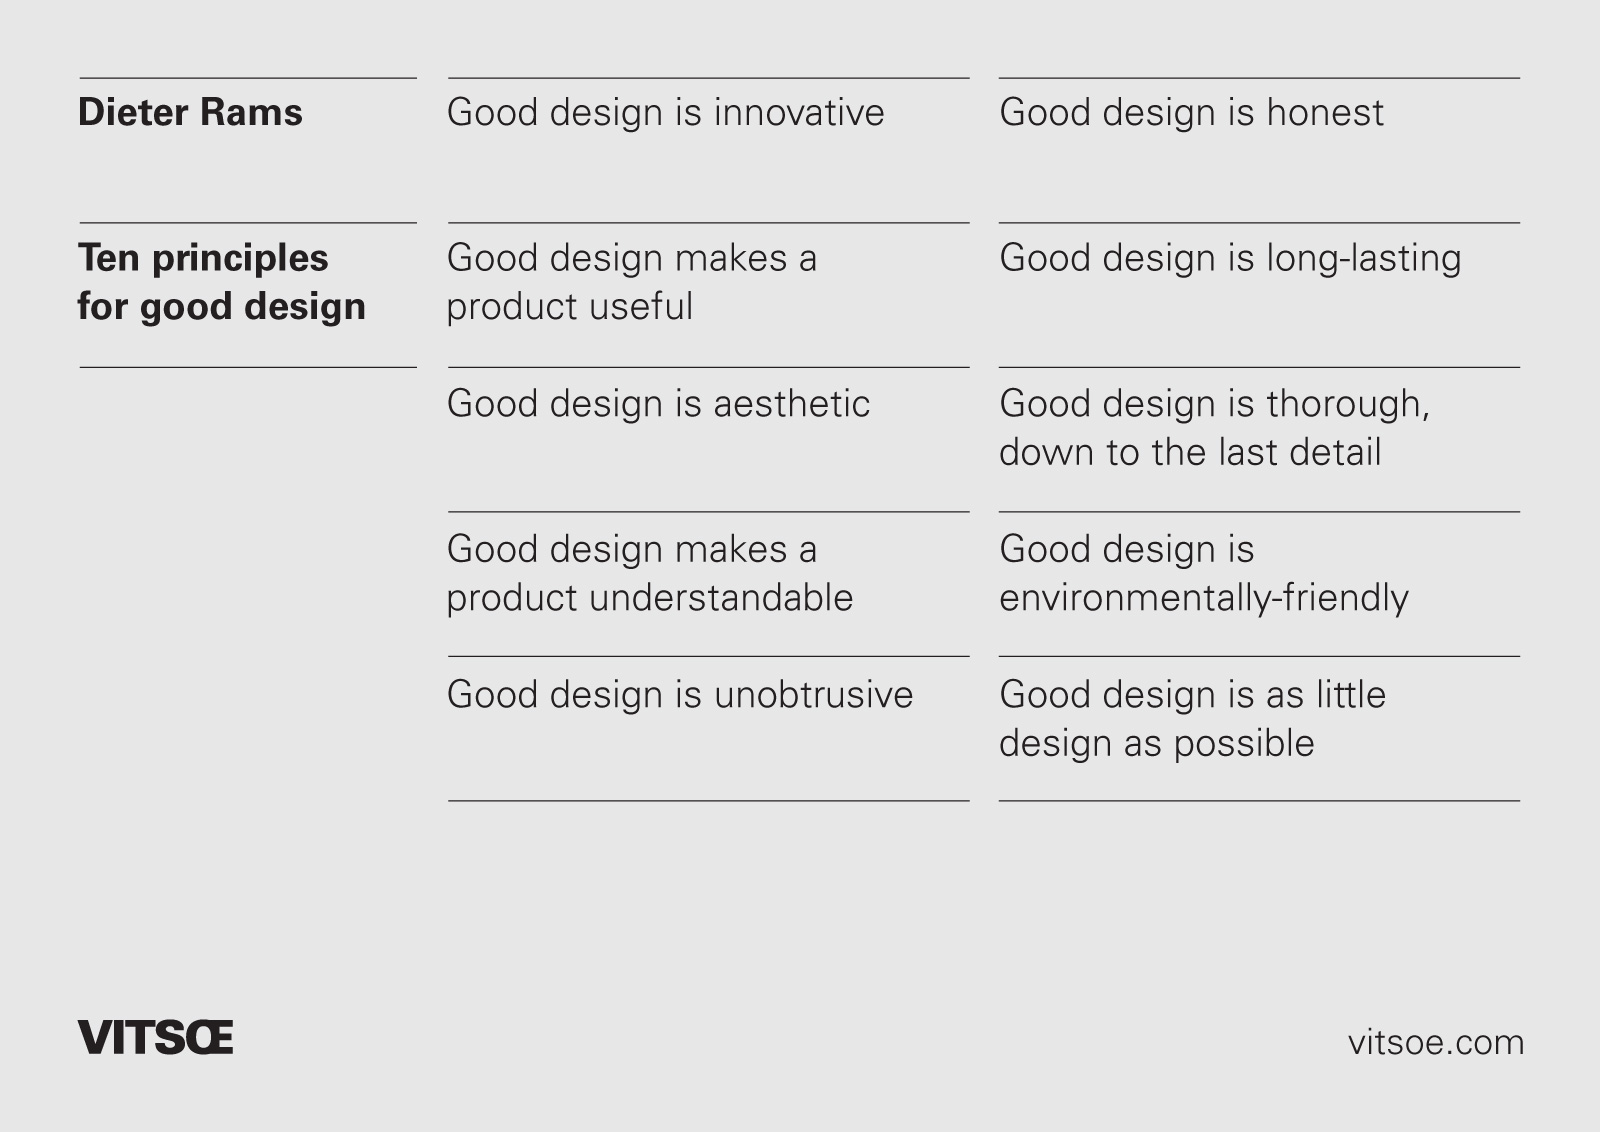 Credit to Vitsoe for this image under the creative commons license.